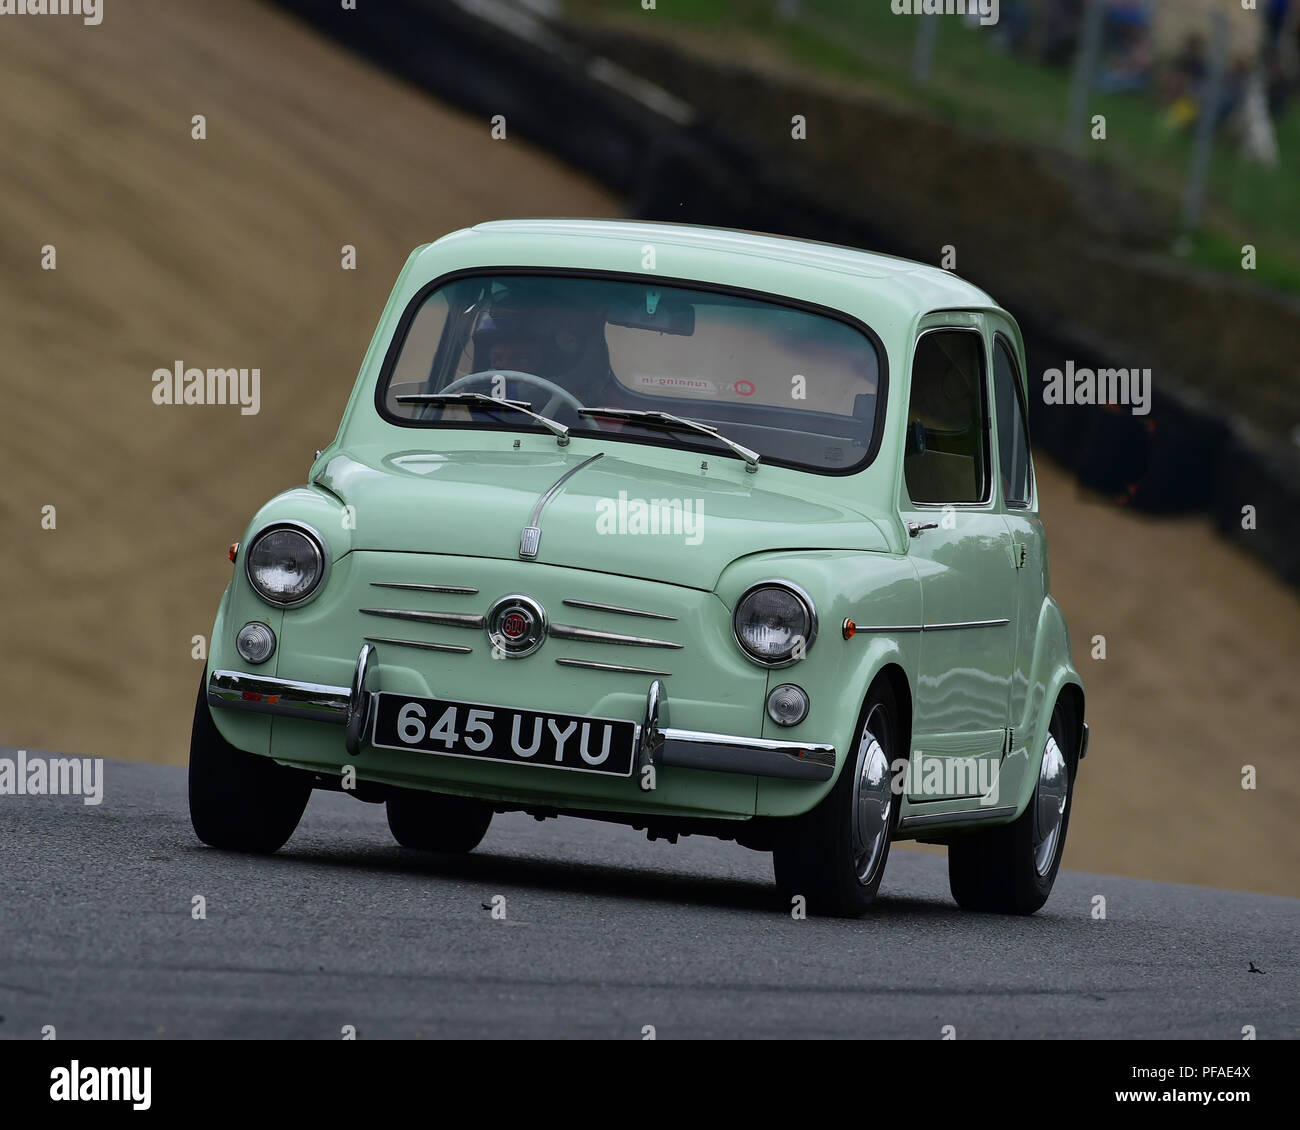 FIAT Abarth 600, Historic Abarth Demonstration, Special Italian Car demo, Festival Italia, Brands Hatch, Kent, England, August 19th, 2018. - Stock Image